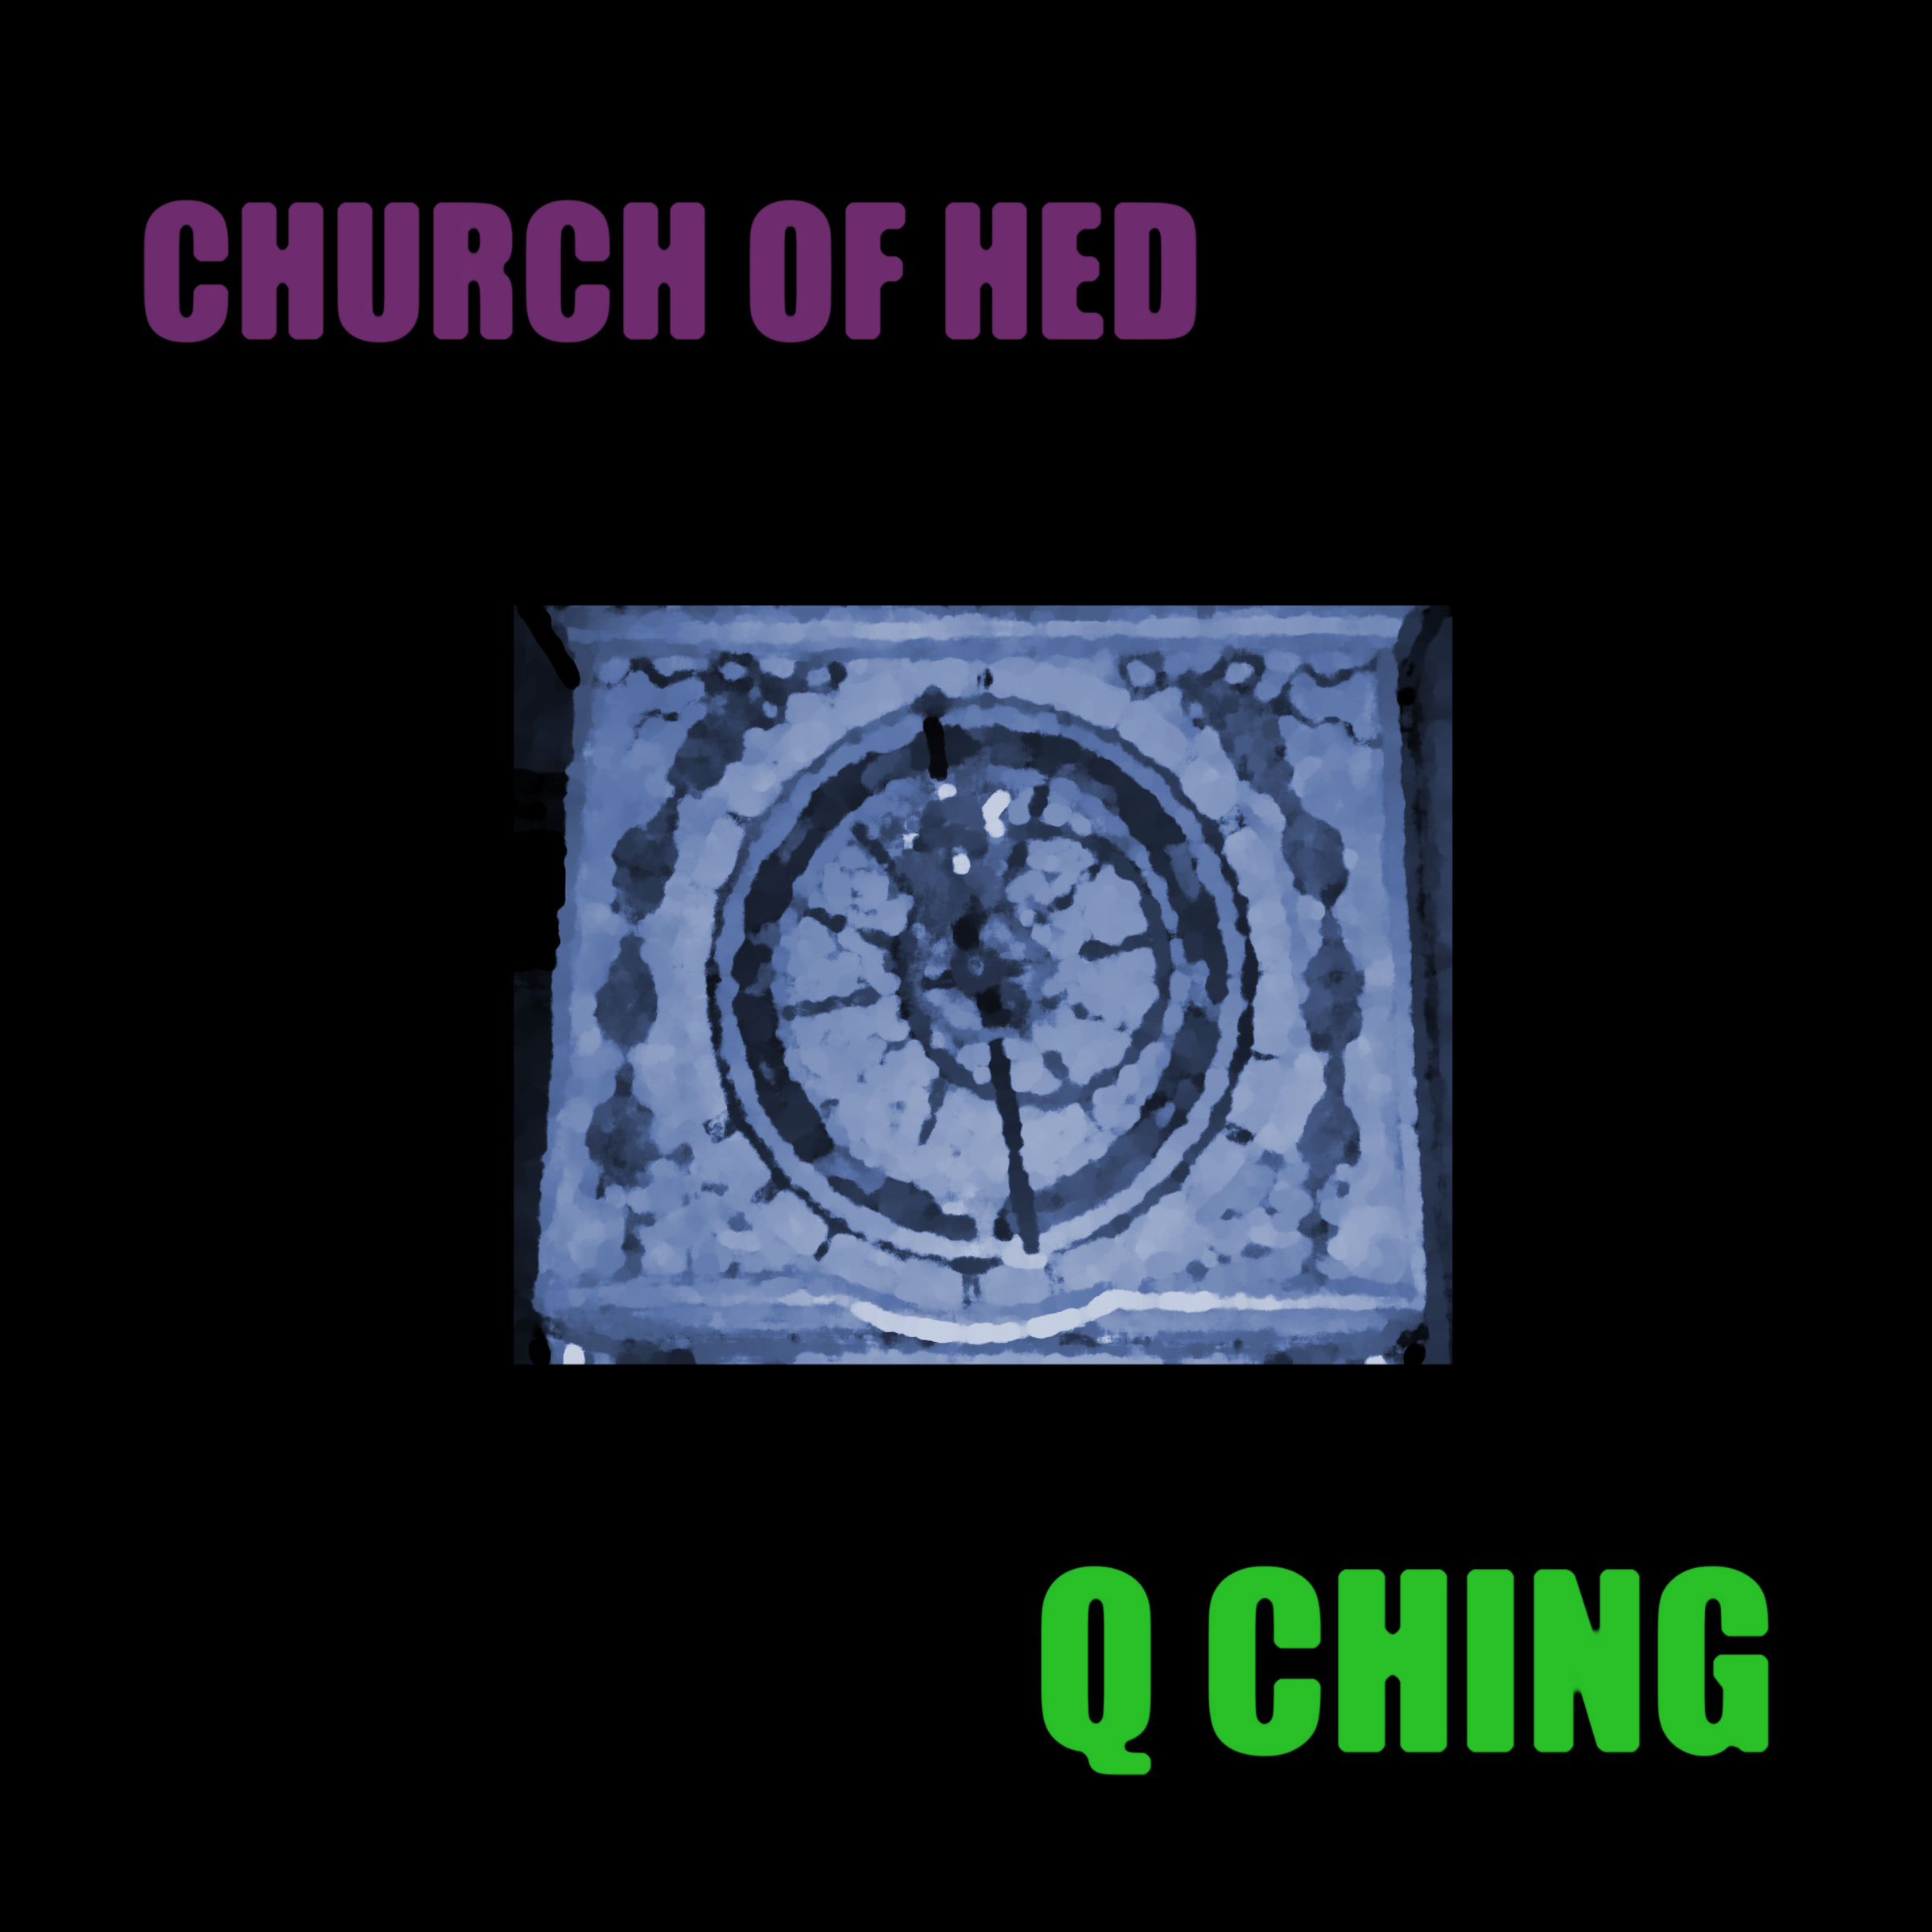 Our New Single - Q Ching - is Released